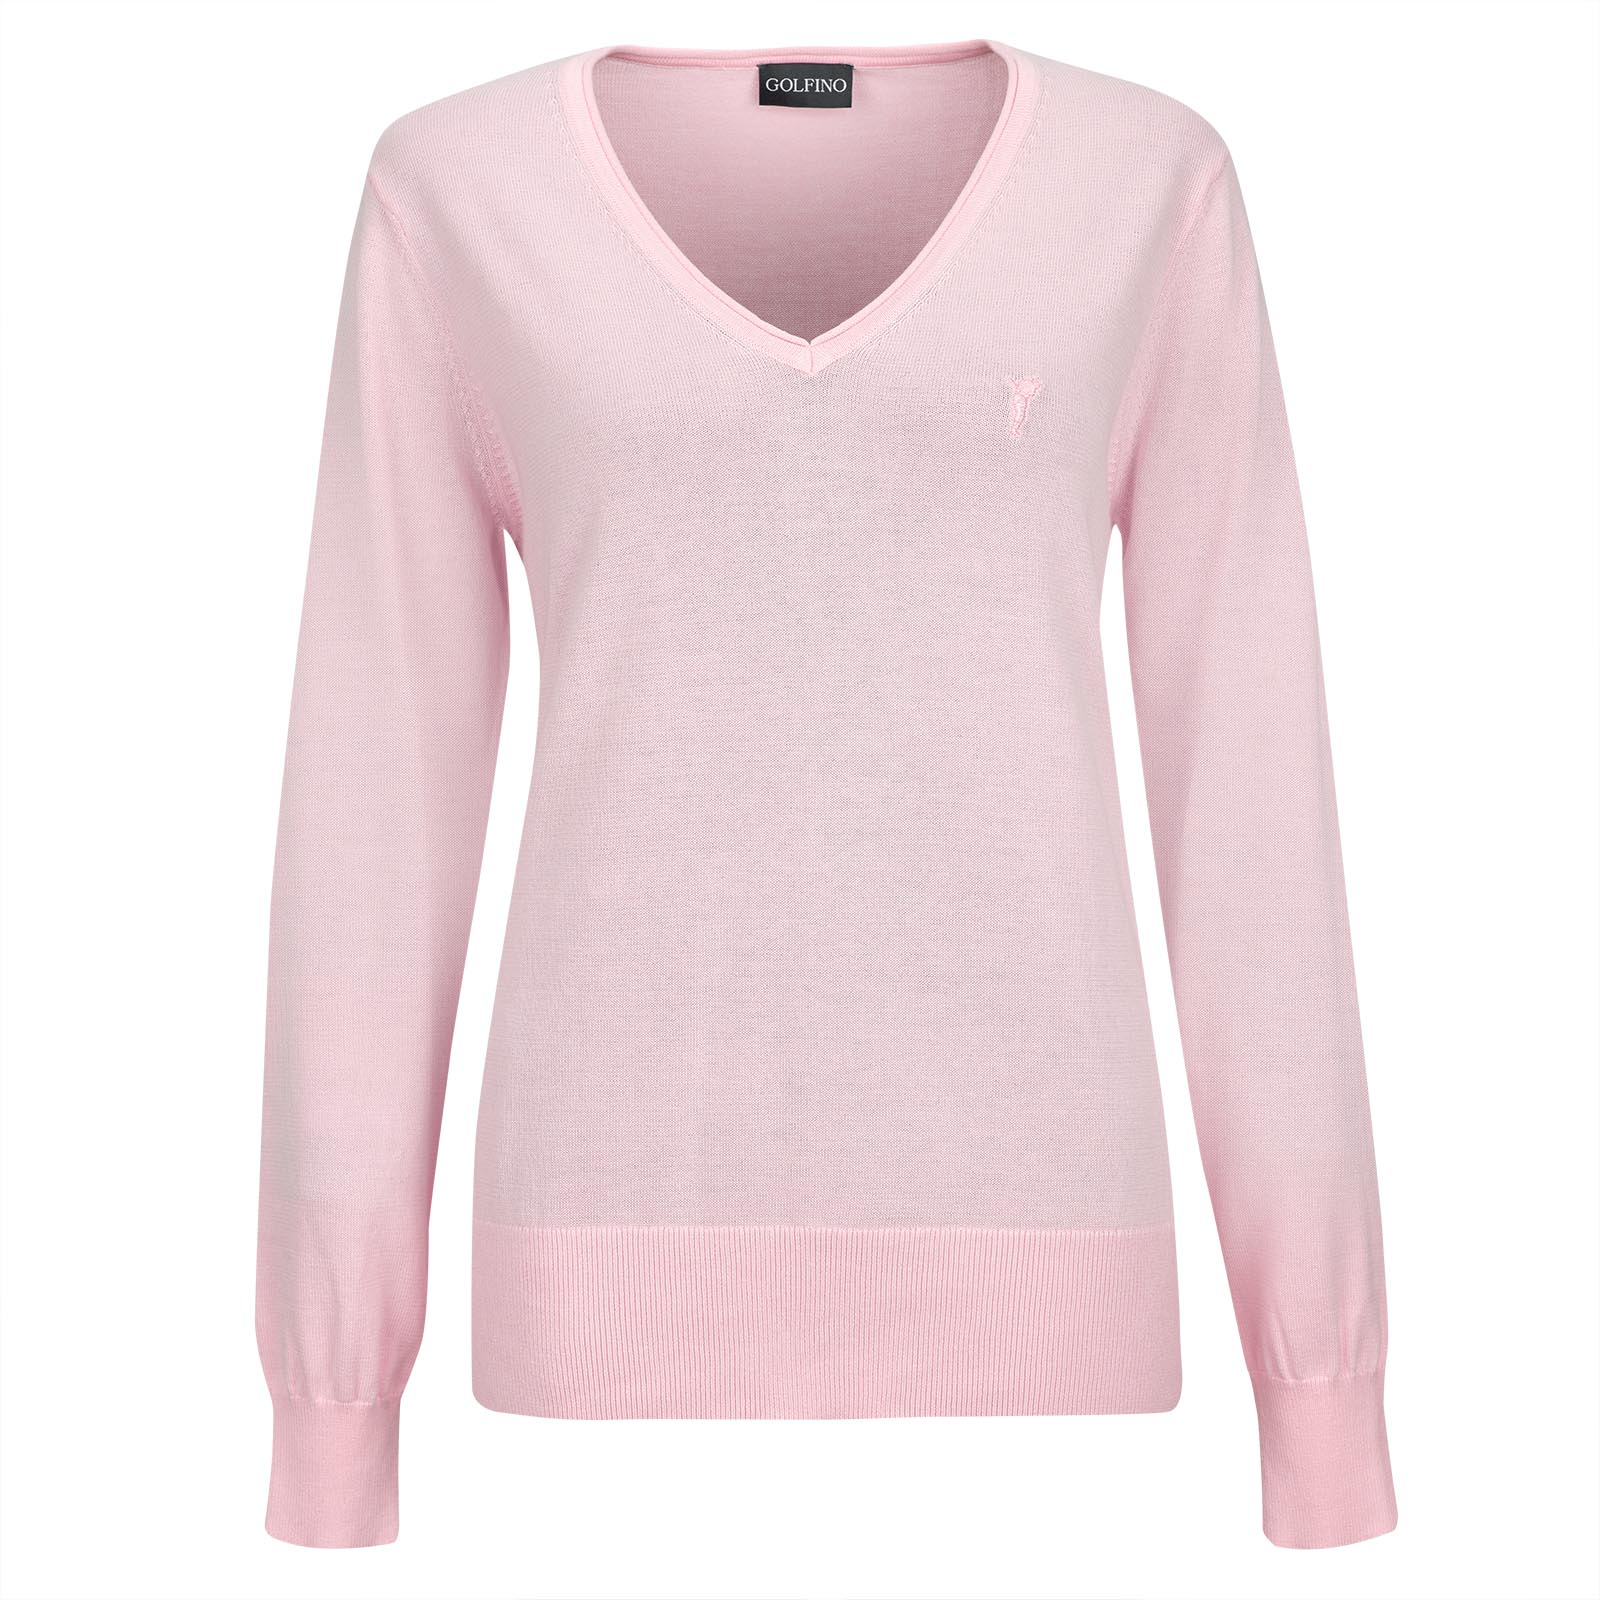 Ladies' V-neck golf sweater